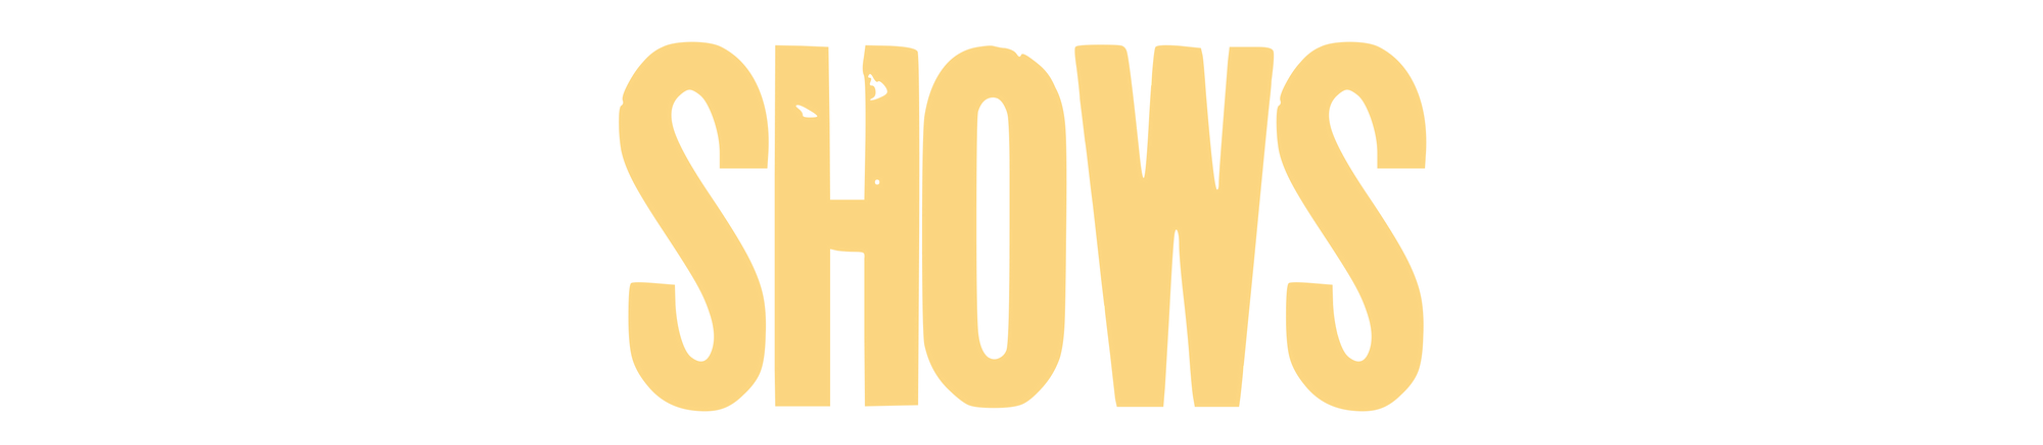 SHOWS_OPAQUE.png